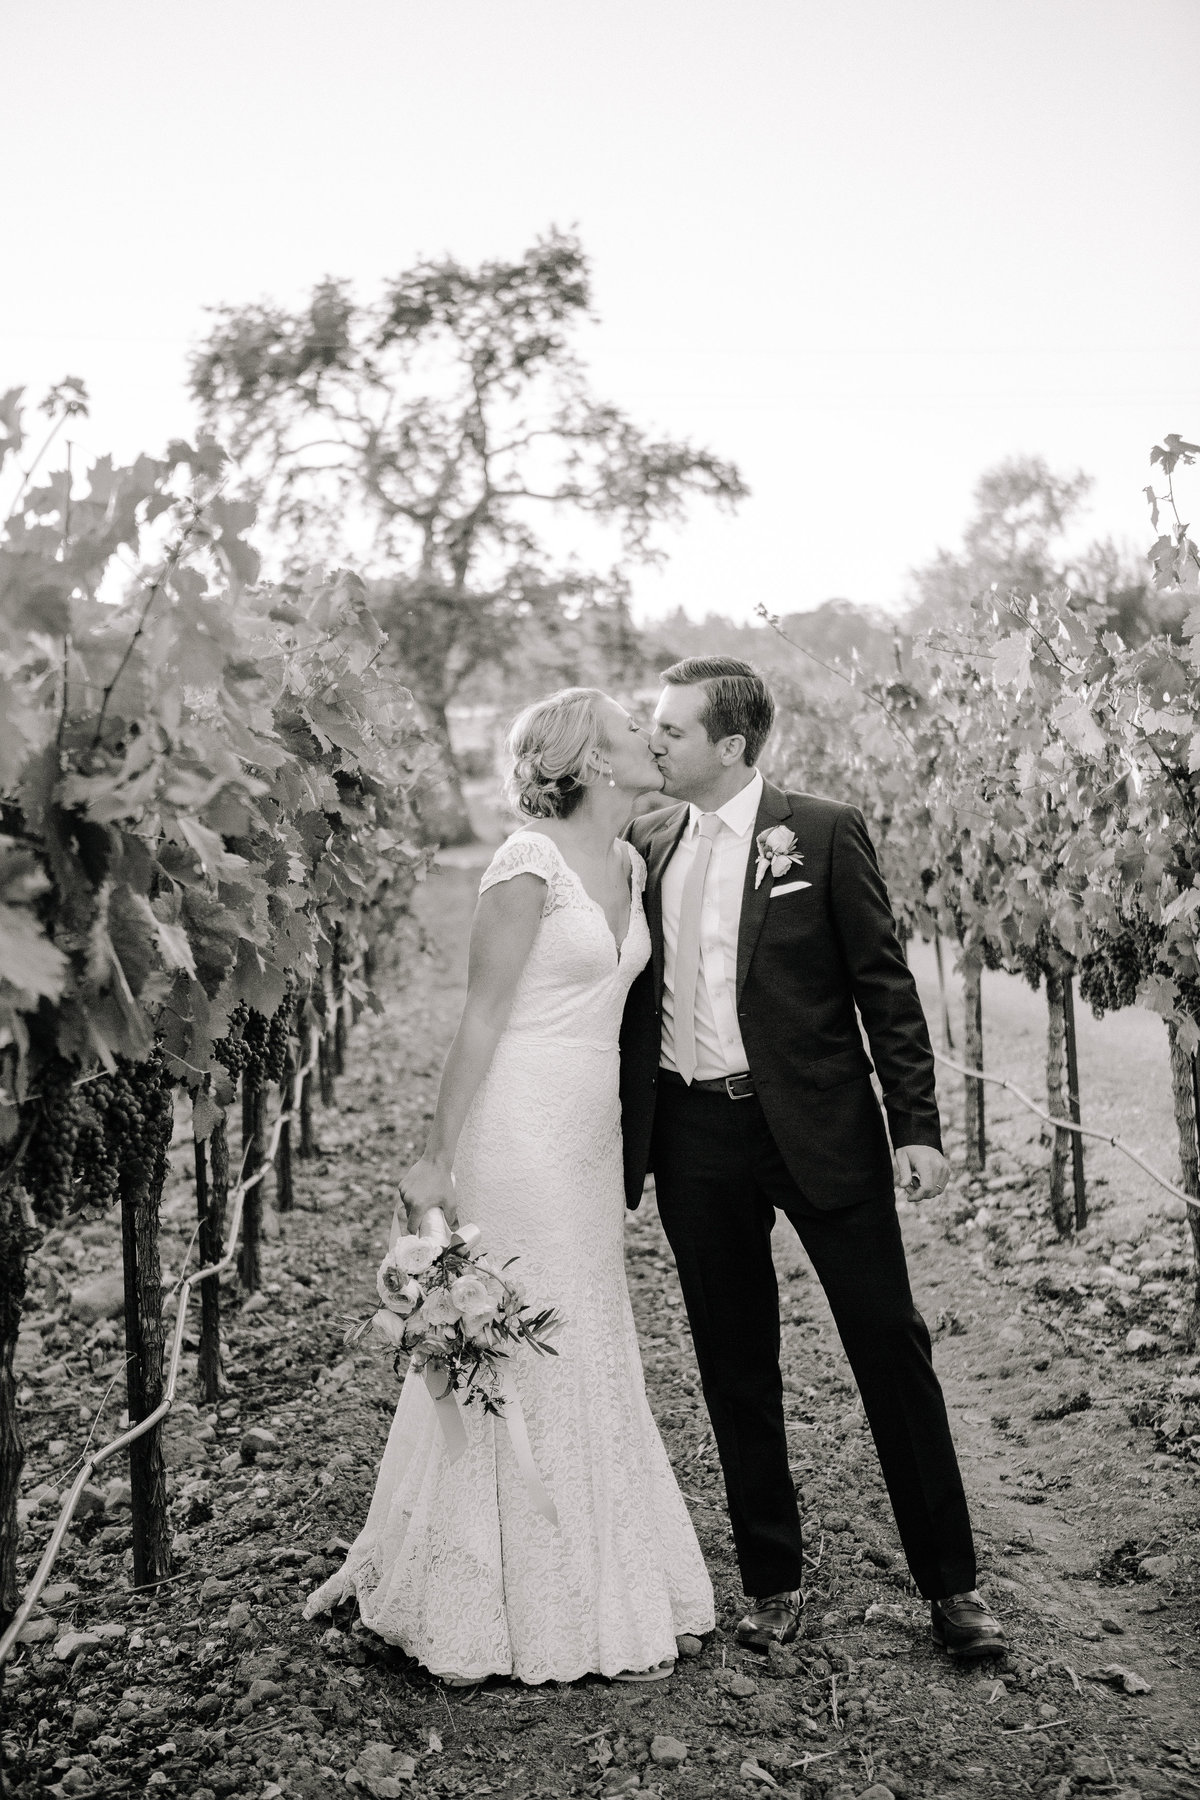 Outdoor wedding in the vines at Beltane Ranch in Sonoma.